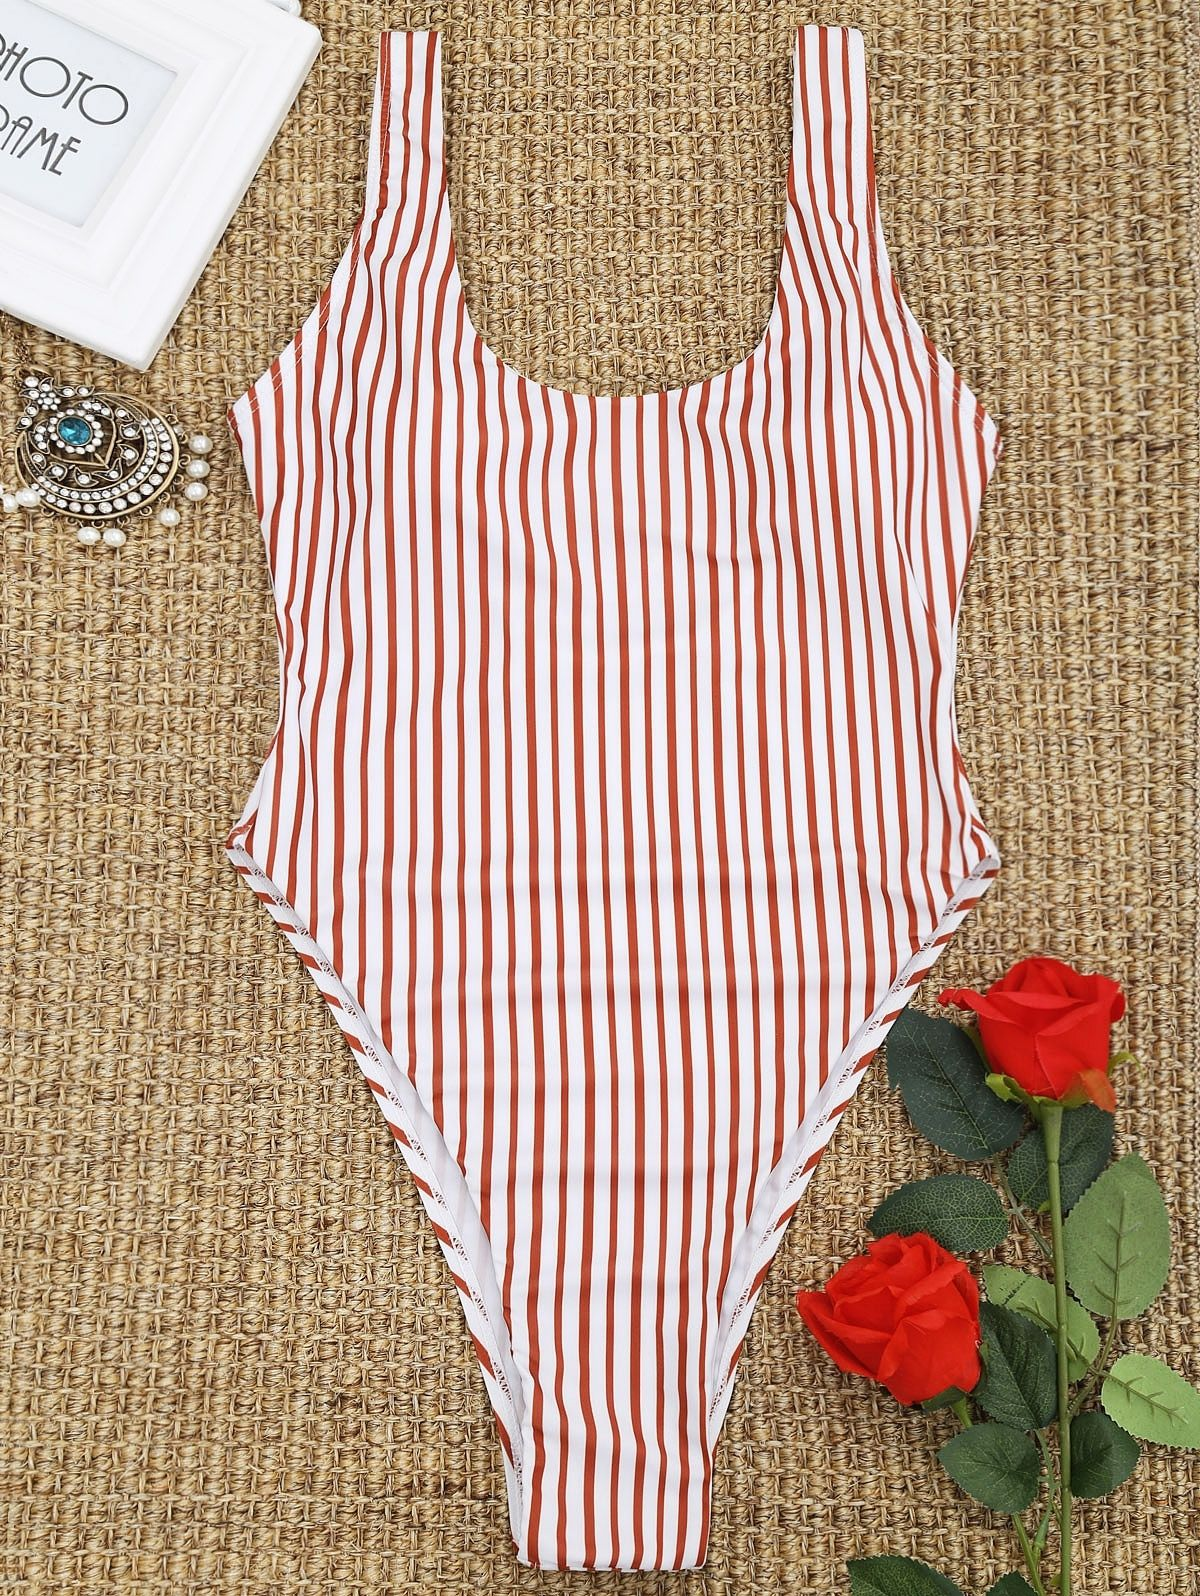 0df21bcfe6d Zaful High Cut Low Back Striped Swimwear - RED WITH WHITE. updating Prices